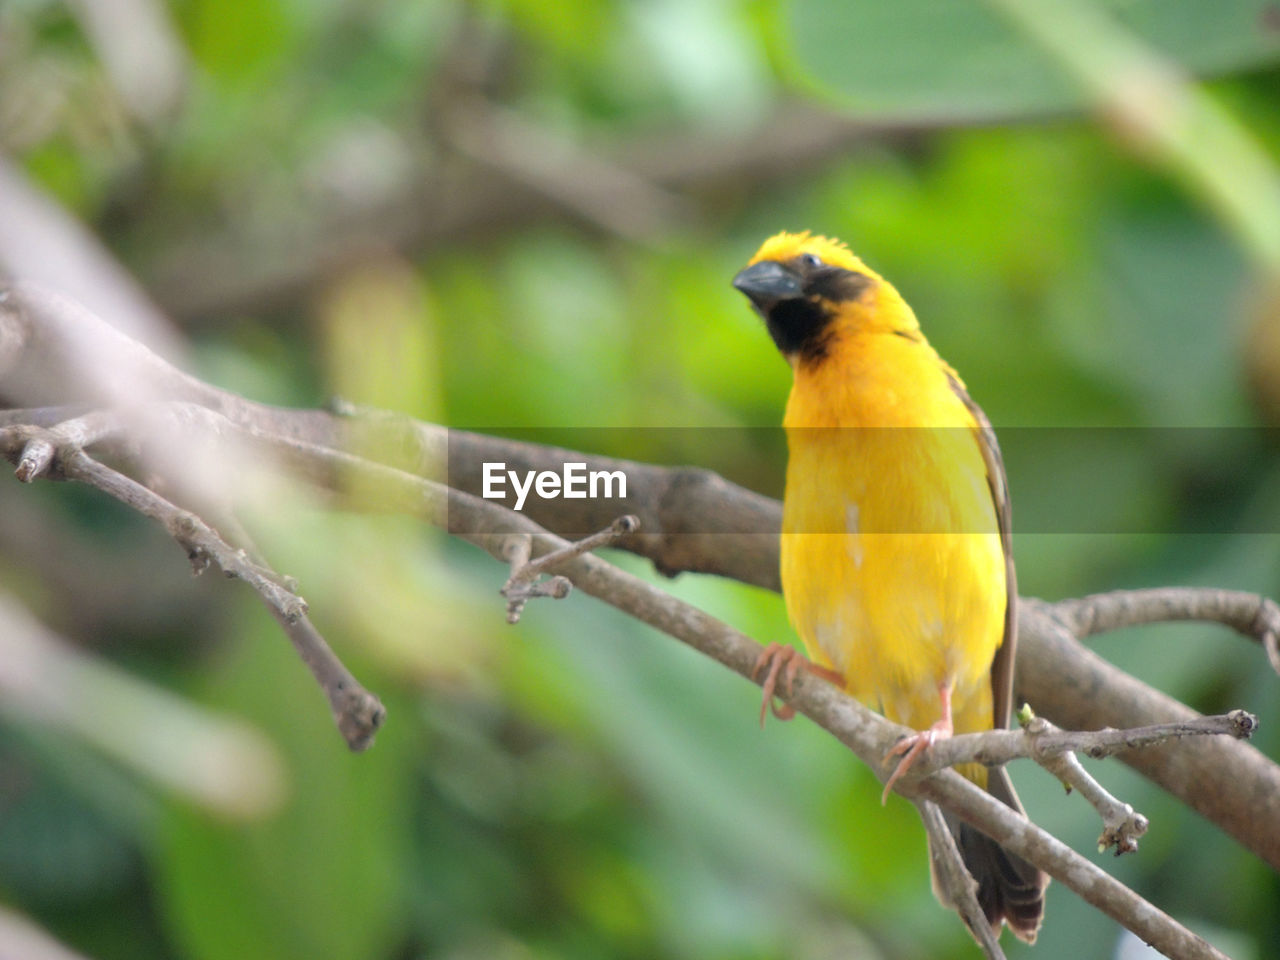 perching, animal wildlife, vertebrate, bird, animal themes, one animal, animals in the wild, animal, branch, tree, plant, yellow, focus on foreground, day, no people, nature, beauty in nature, outdoors, close-up, songbird